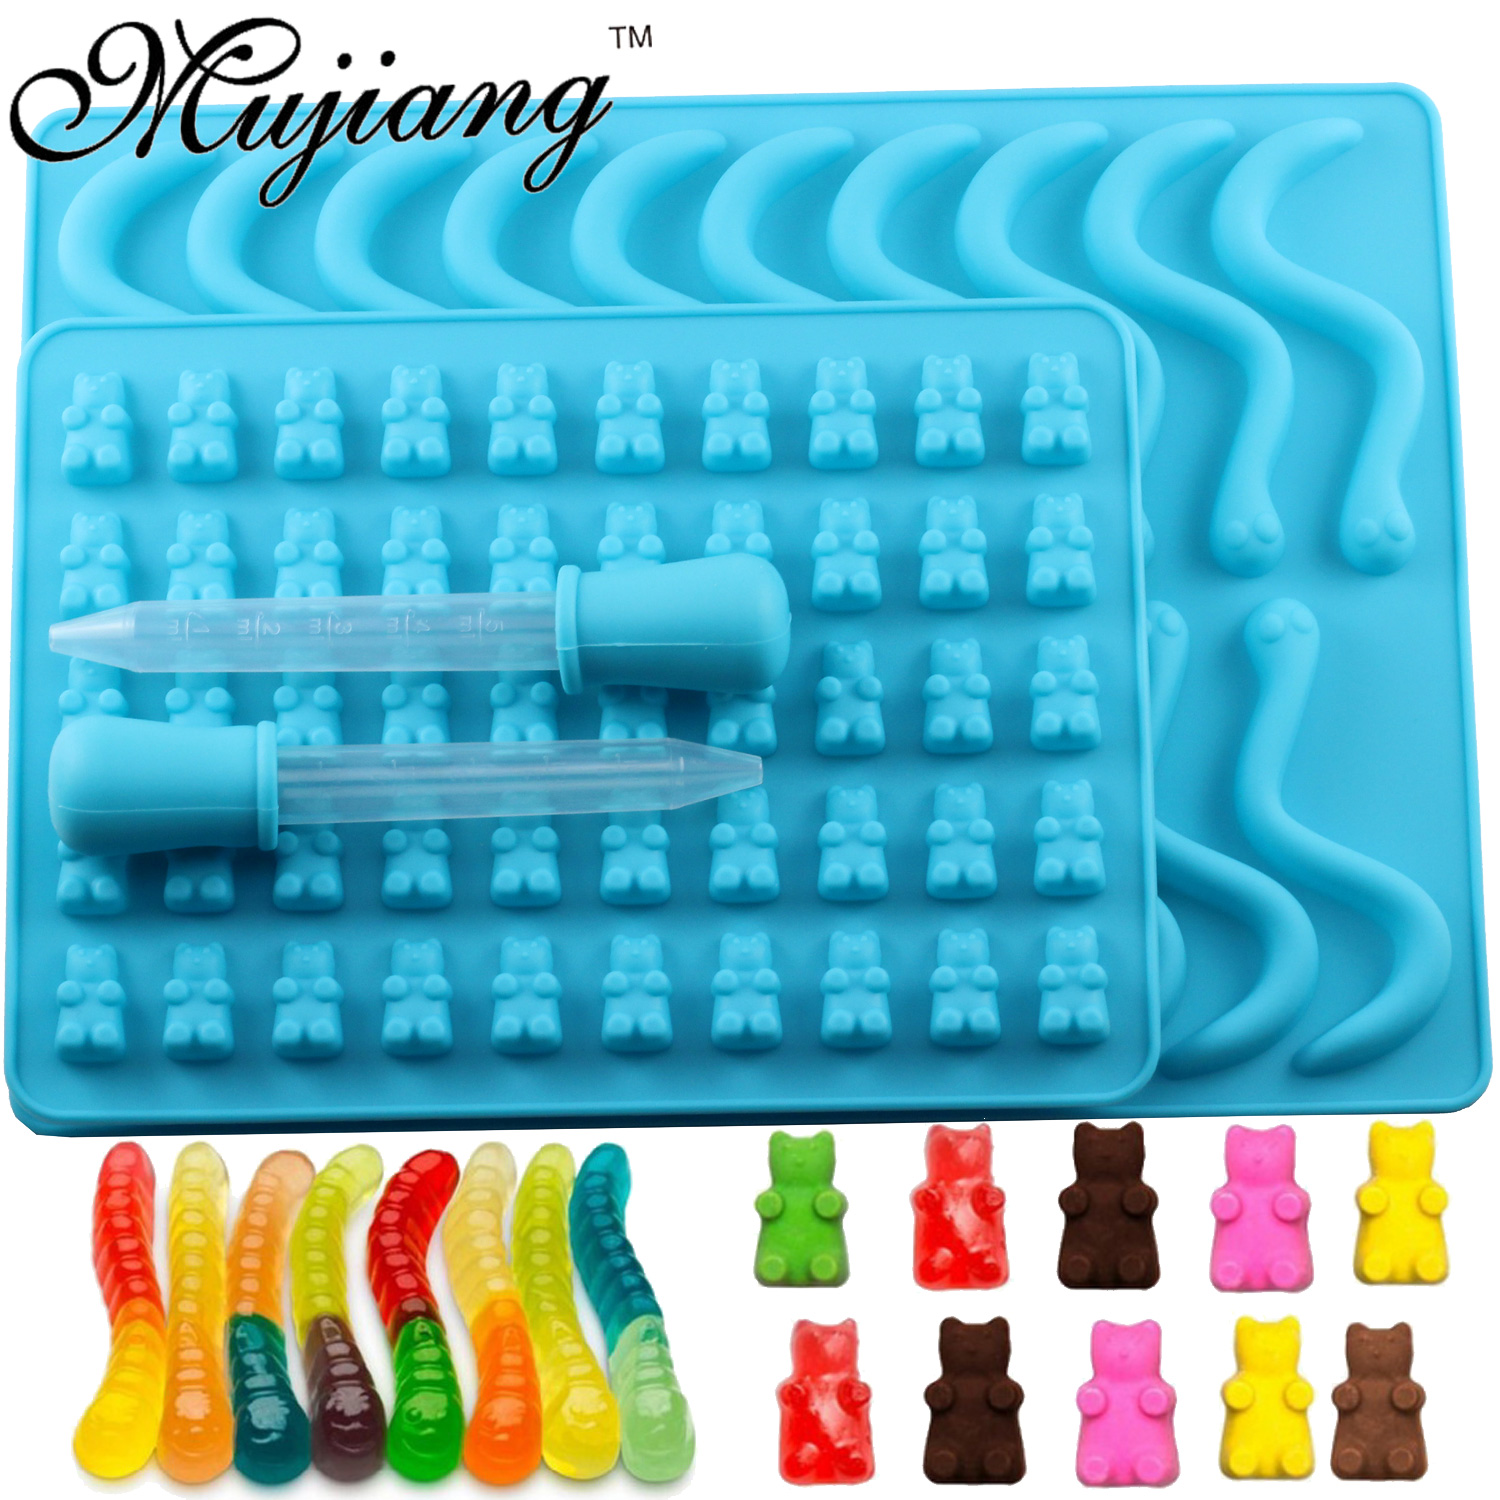 Mujiang 50 Cavity Bear Silicone Gummy Chocolate Sugar Candy Jelly Molds Snake Worms Ice Tube Tray Mold Cake Decorating Tools